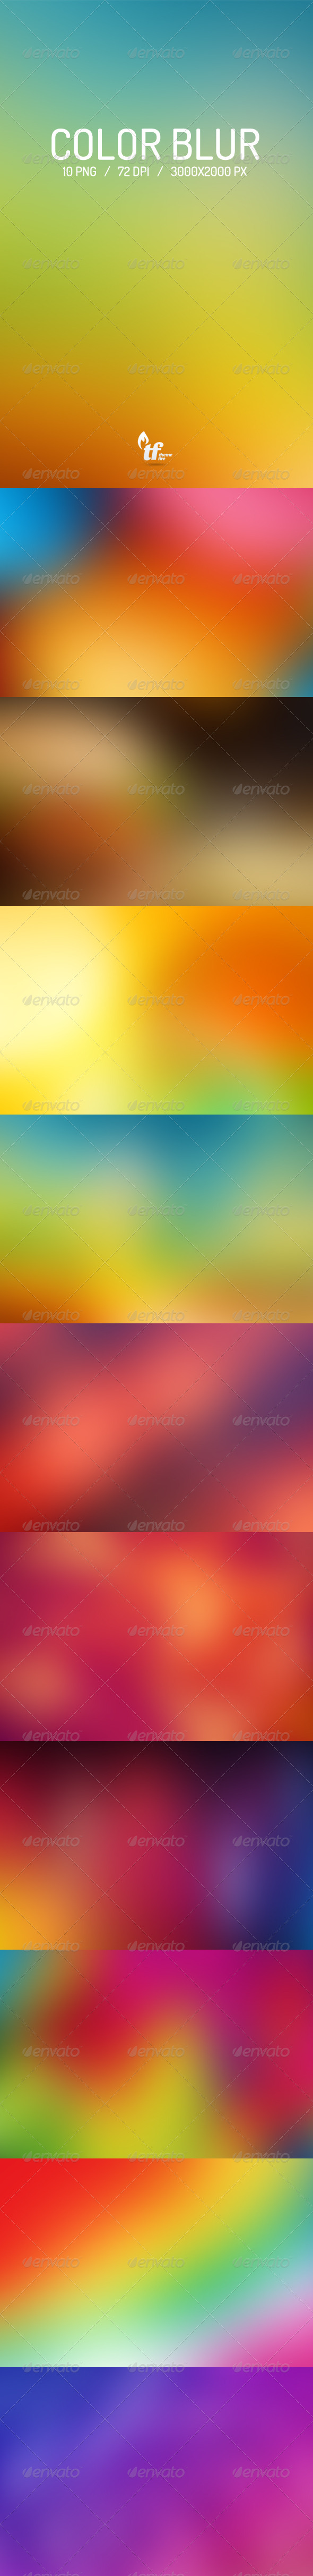 GraphicRiver Color Blur Backgrounds 6974286